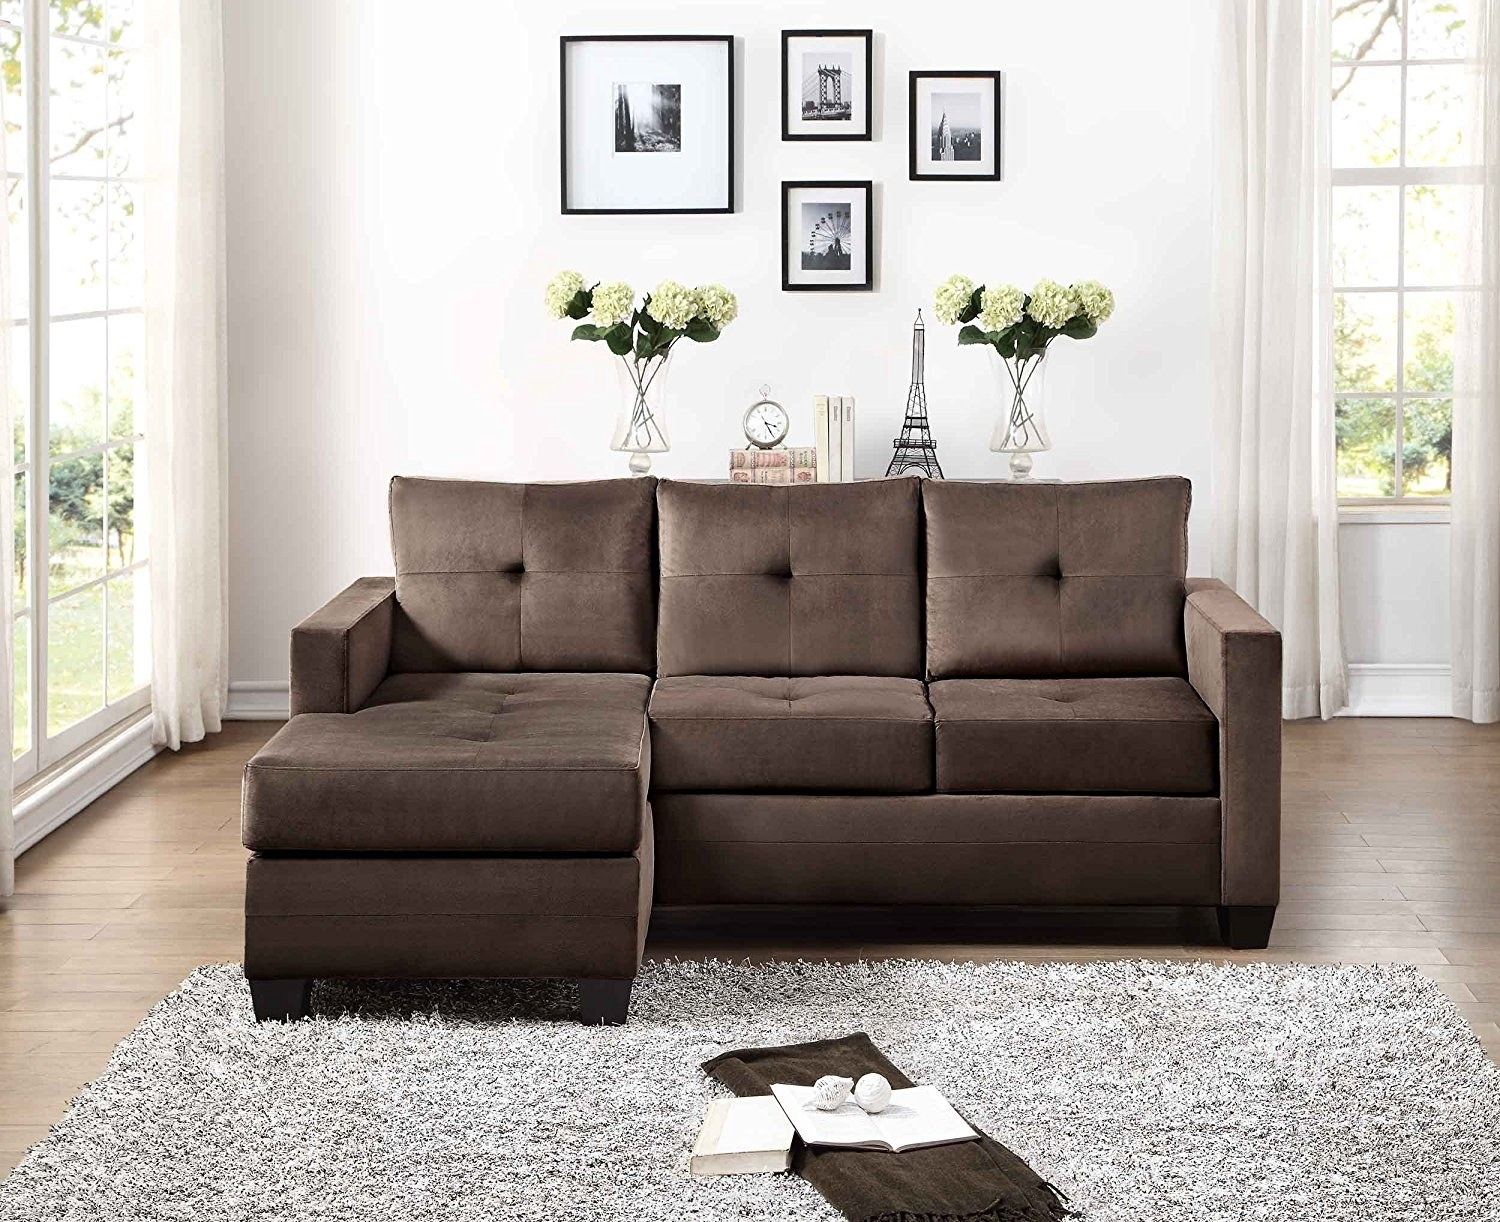 22 inexpensive couches you 39 ll actually want in your home for Comfy couches for sale